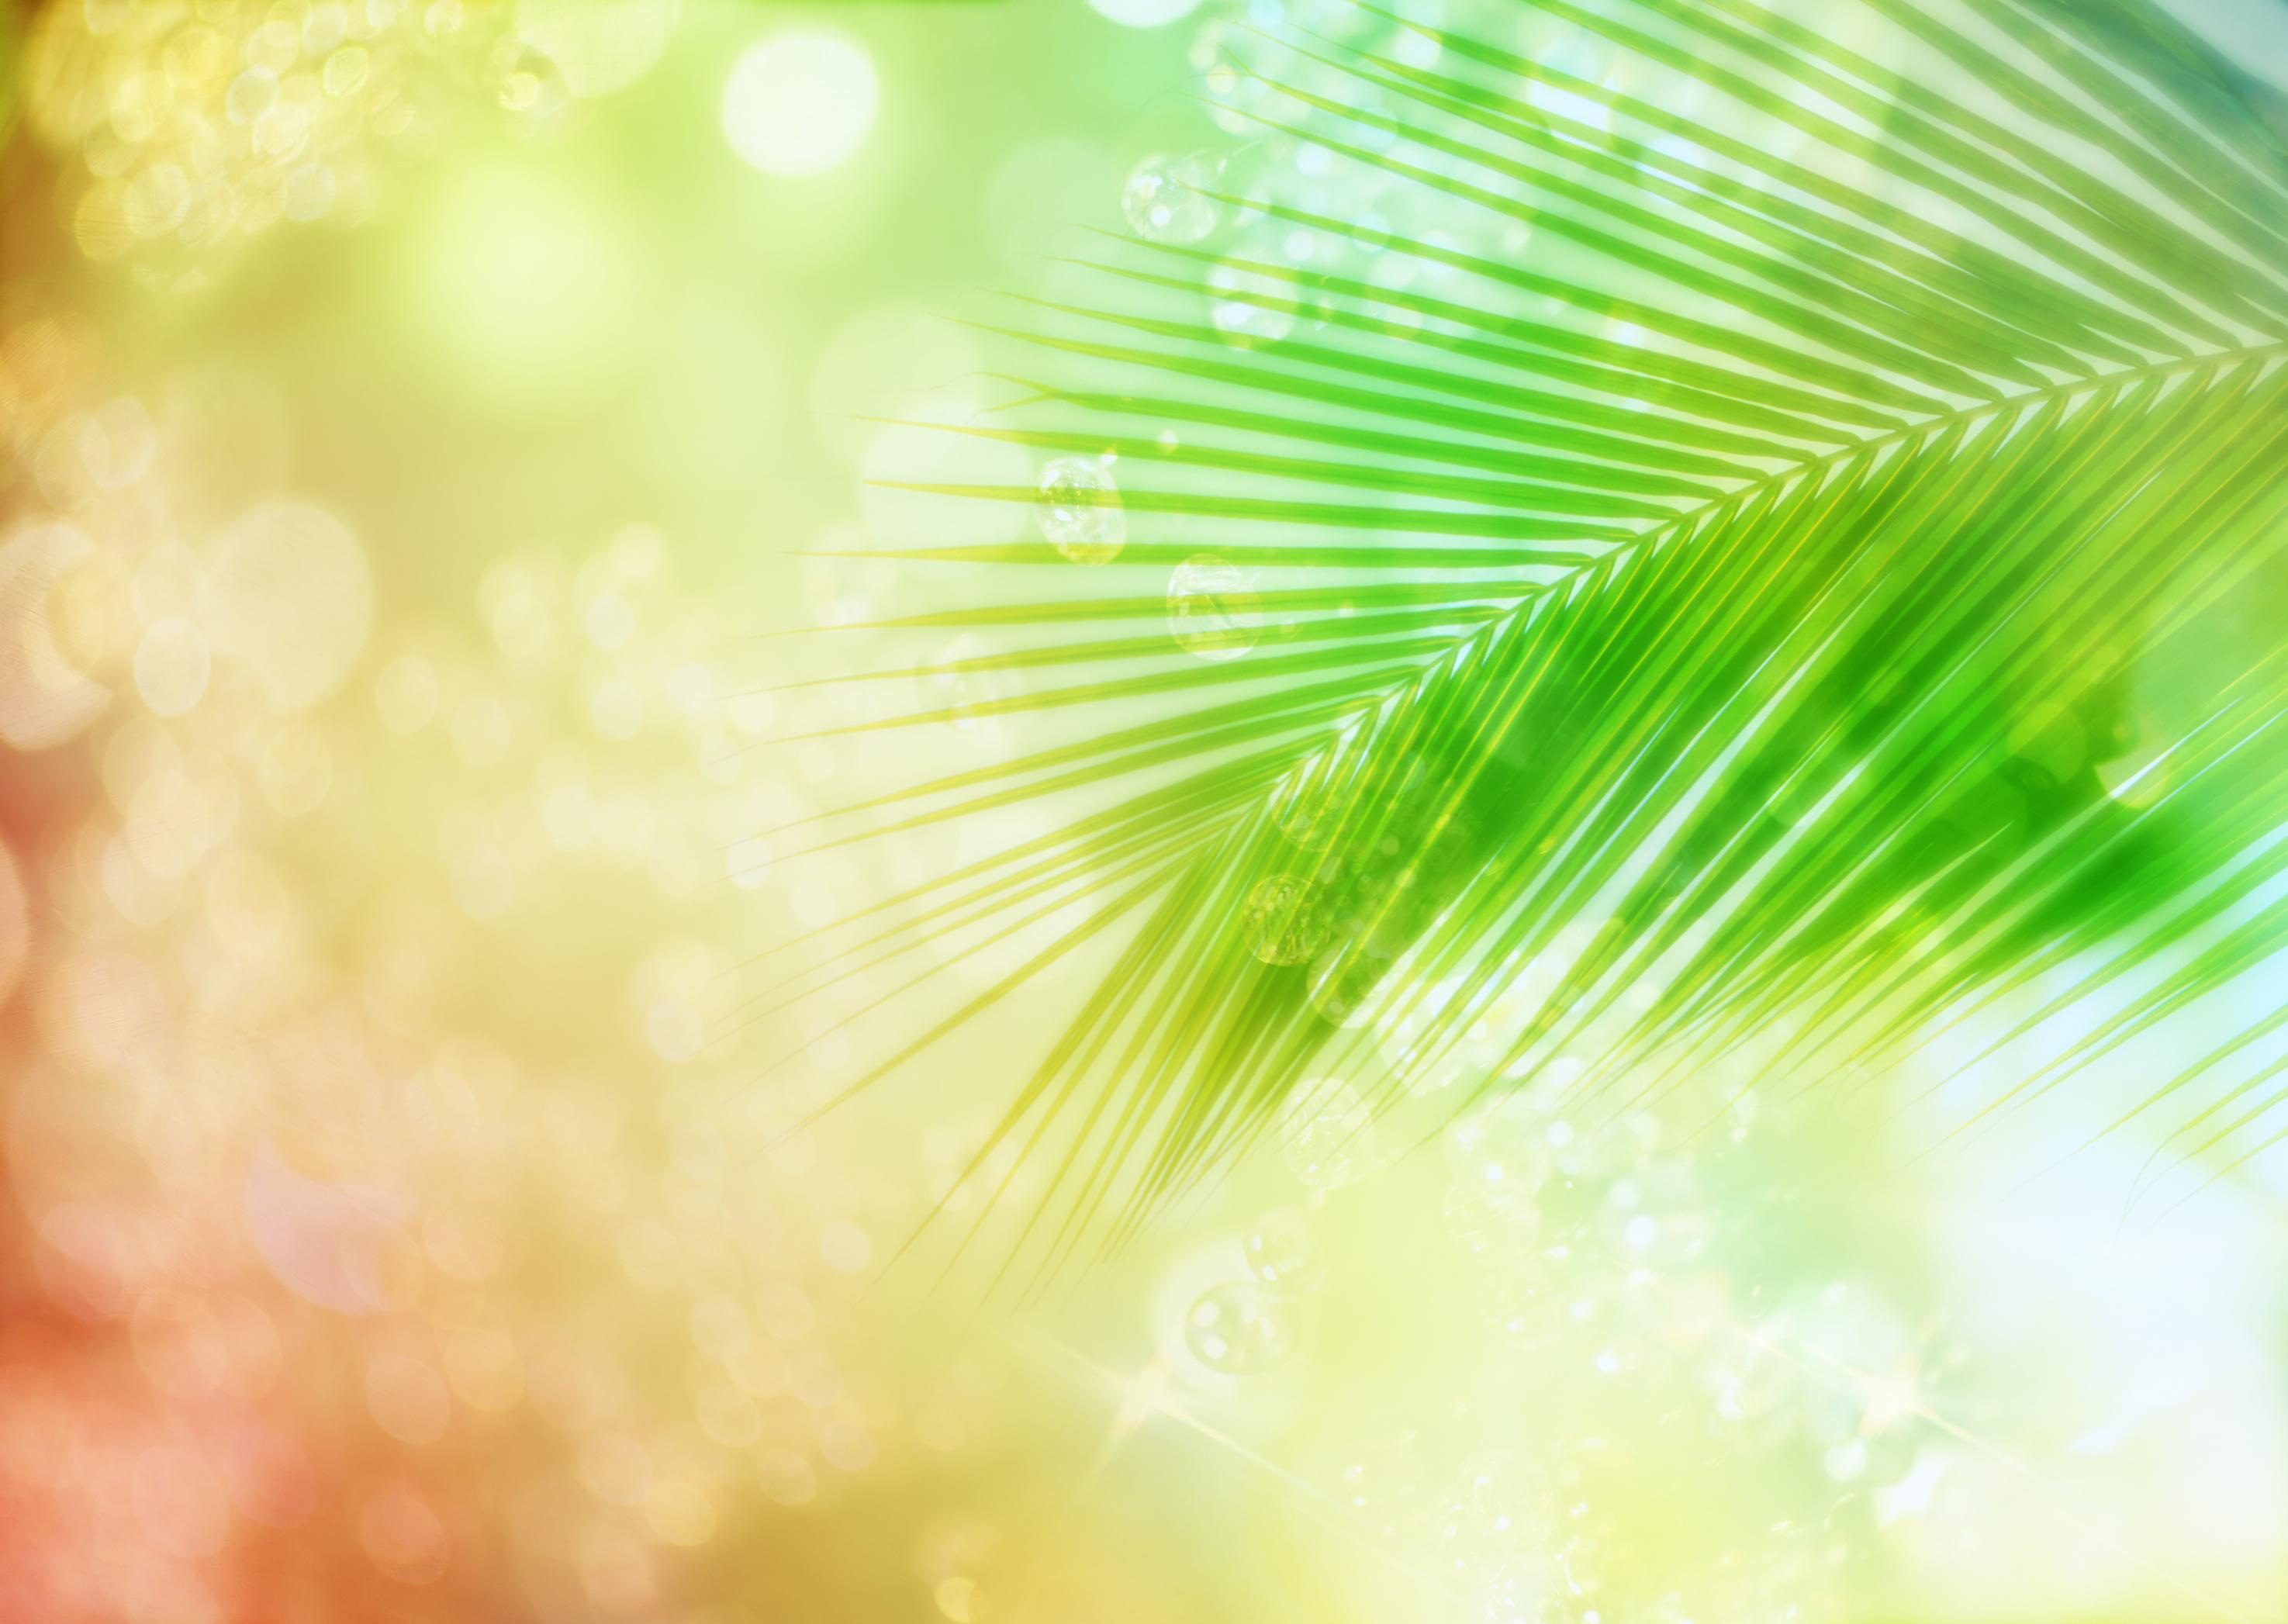 palm leaf   49834   High Quality and Resolution Wallpapers 2950x2094